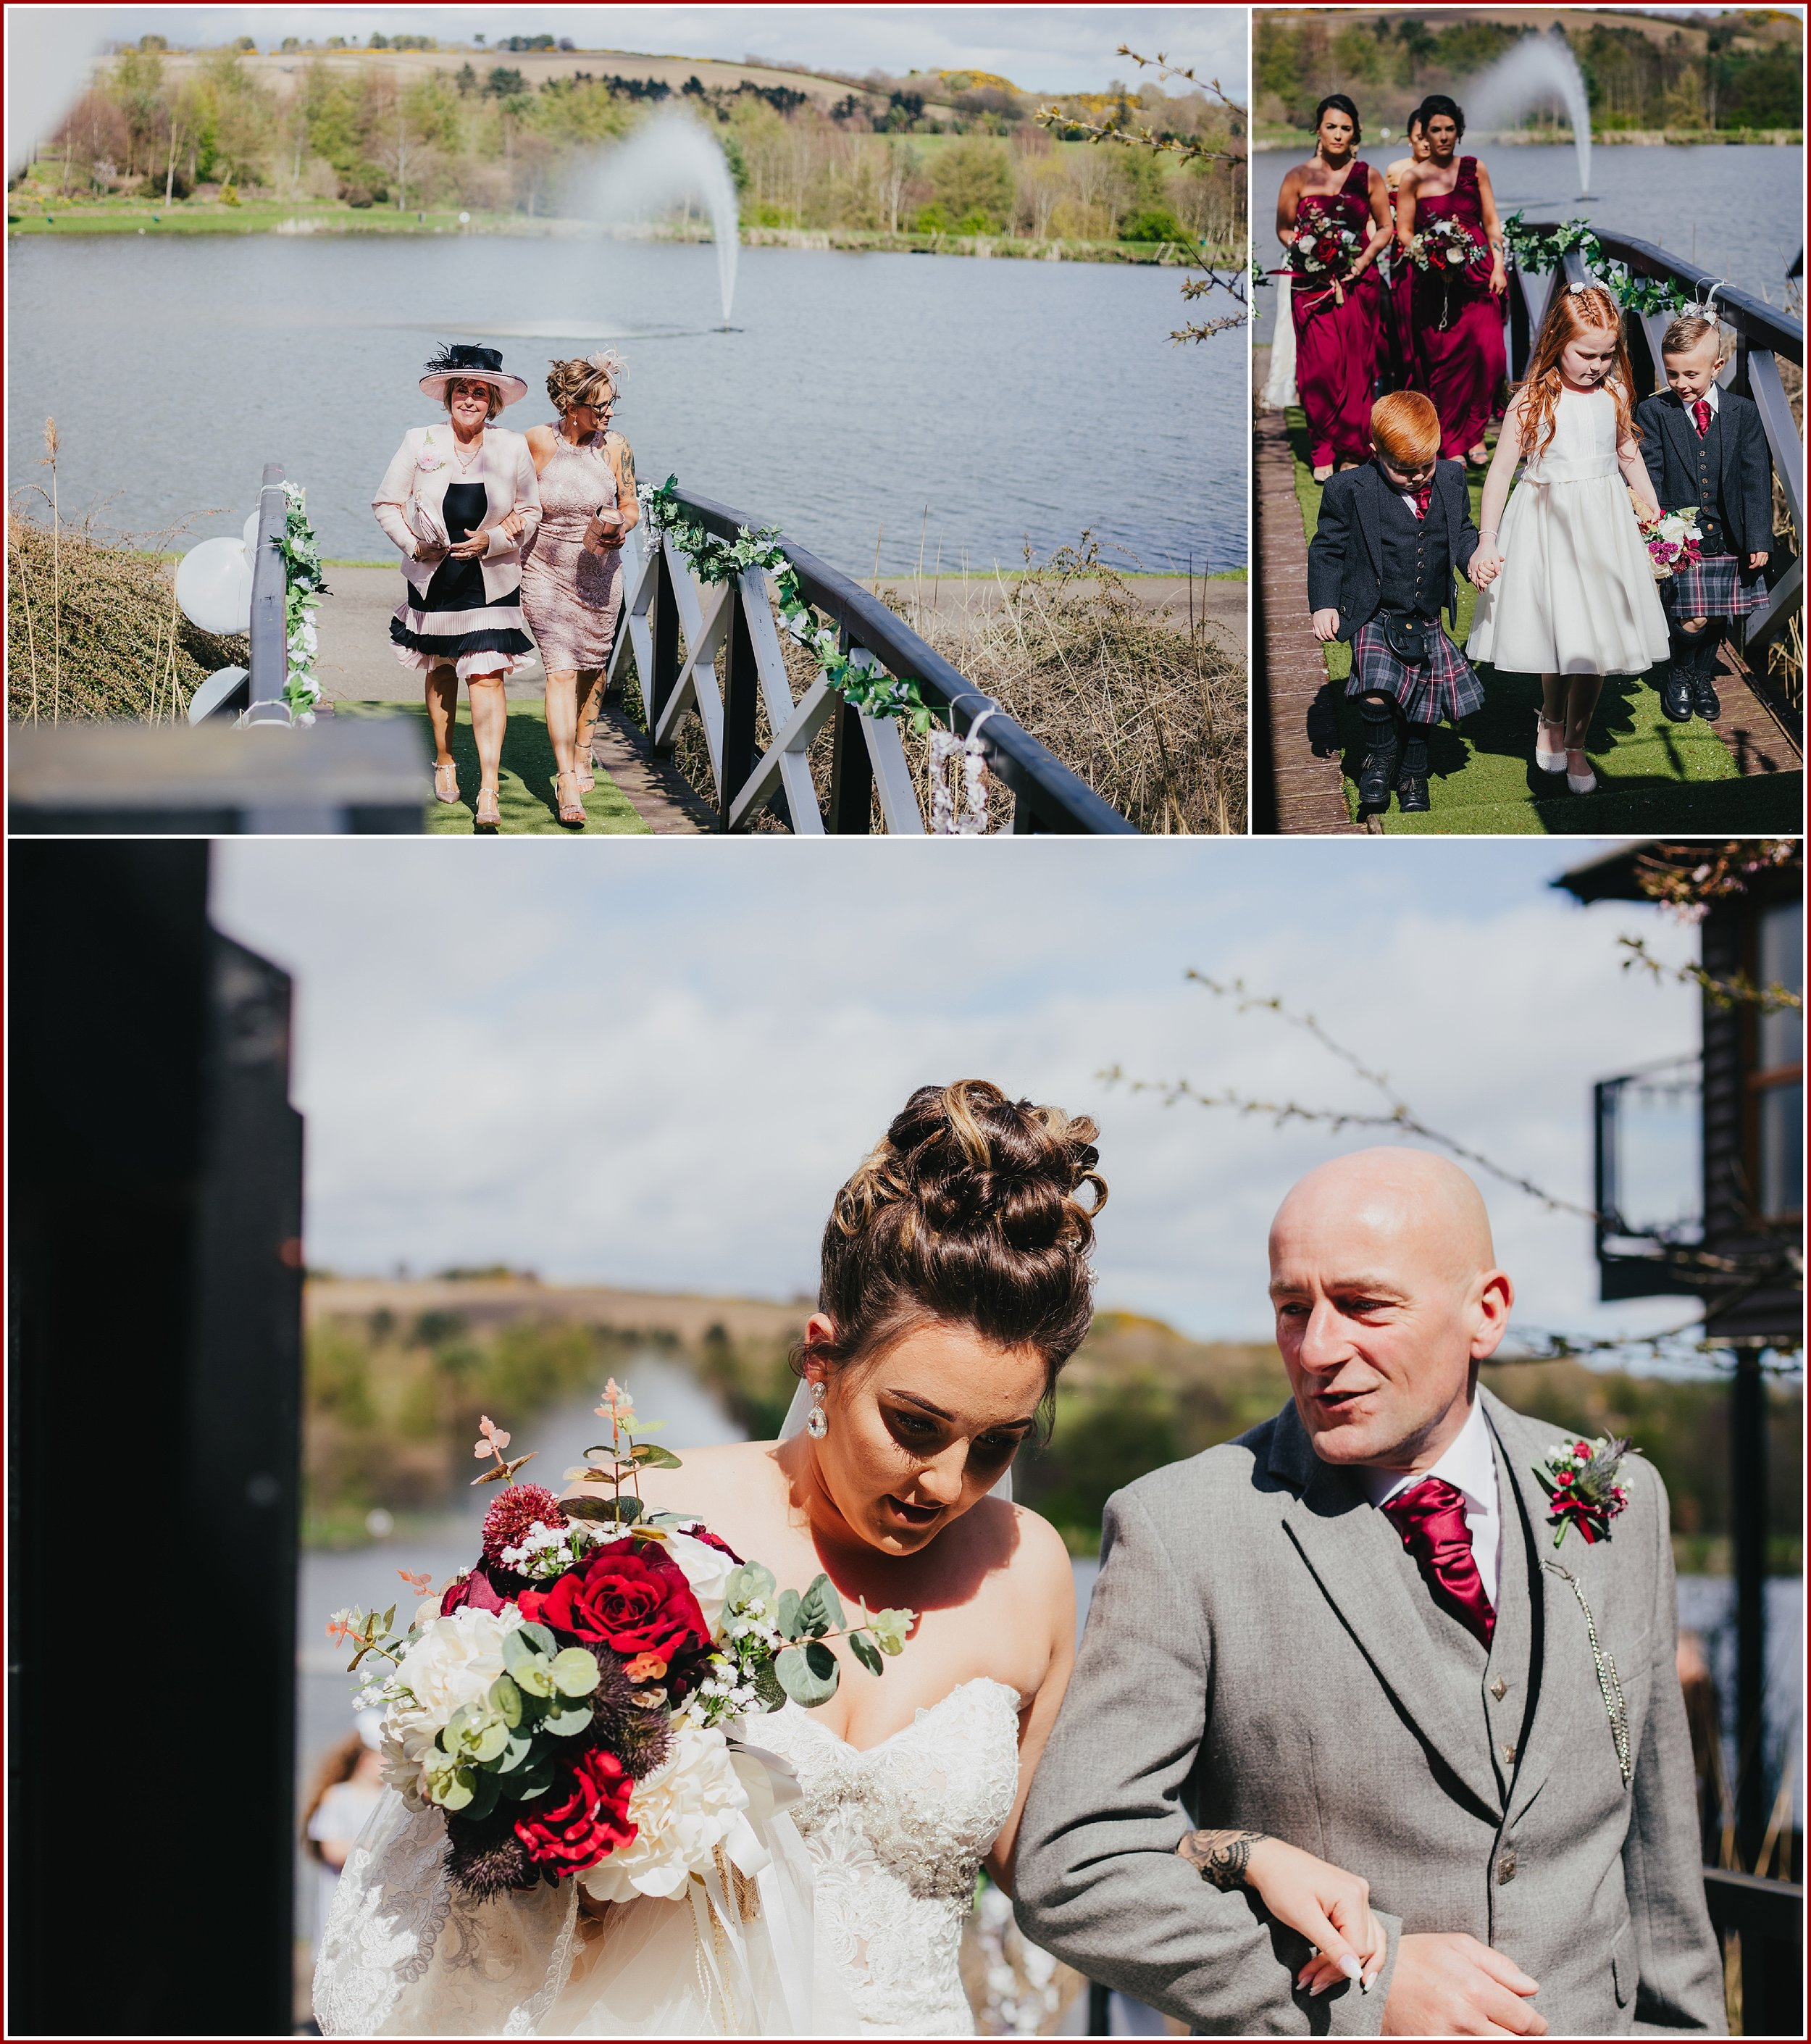 Kirsty_Brown_Wedding_Photography_0072.jpg